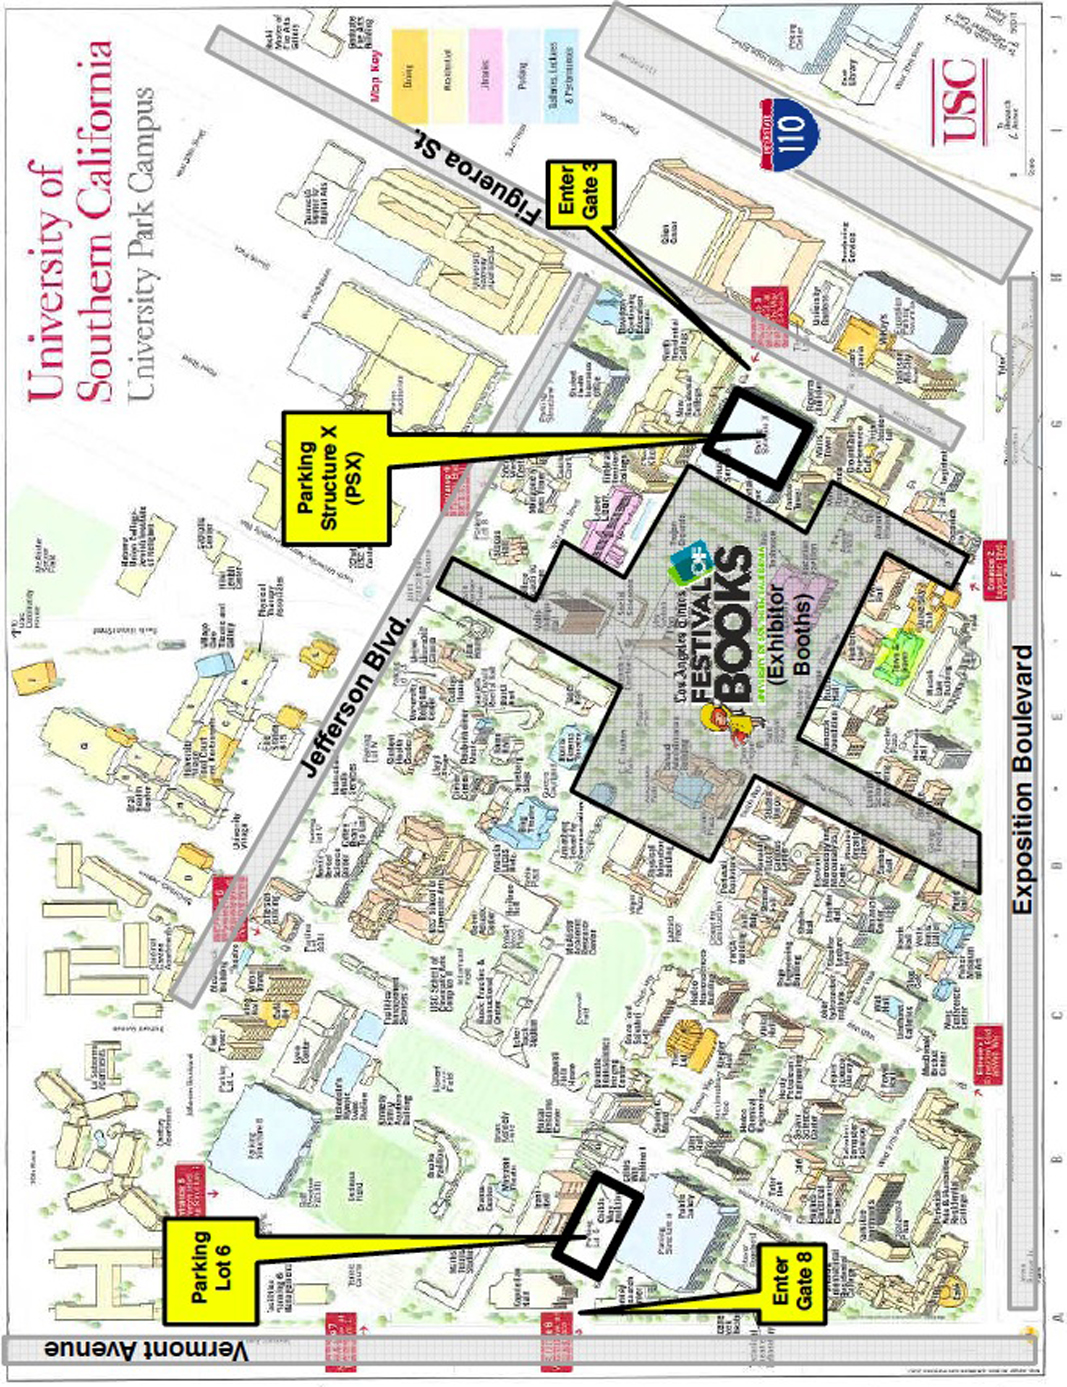 Usc Parking Map Cool Maps, - World Map Database on jcu map, stanford university map, piedmont tech map, la southwest college map, west texas state map, university of ca map, harvard map, university of michigan map, unc map, duke map, ucla map, galveston texas city map, mayo clinic rochester map, hcc ybor campus map, seton hall map, los angeles cities map, michigan state university campus map, uc berkeley map, csu east bay map, university of oregon campus map,